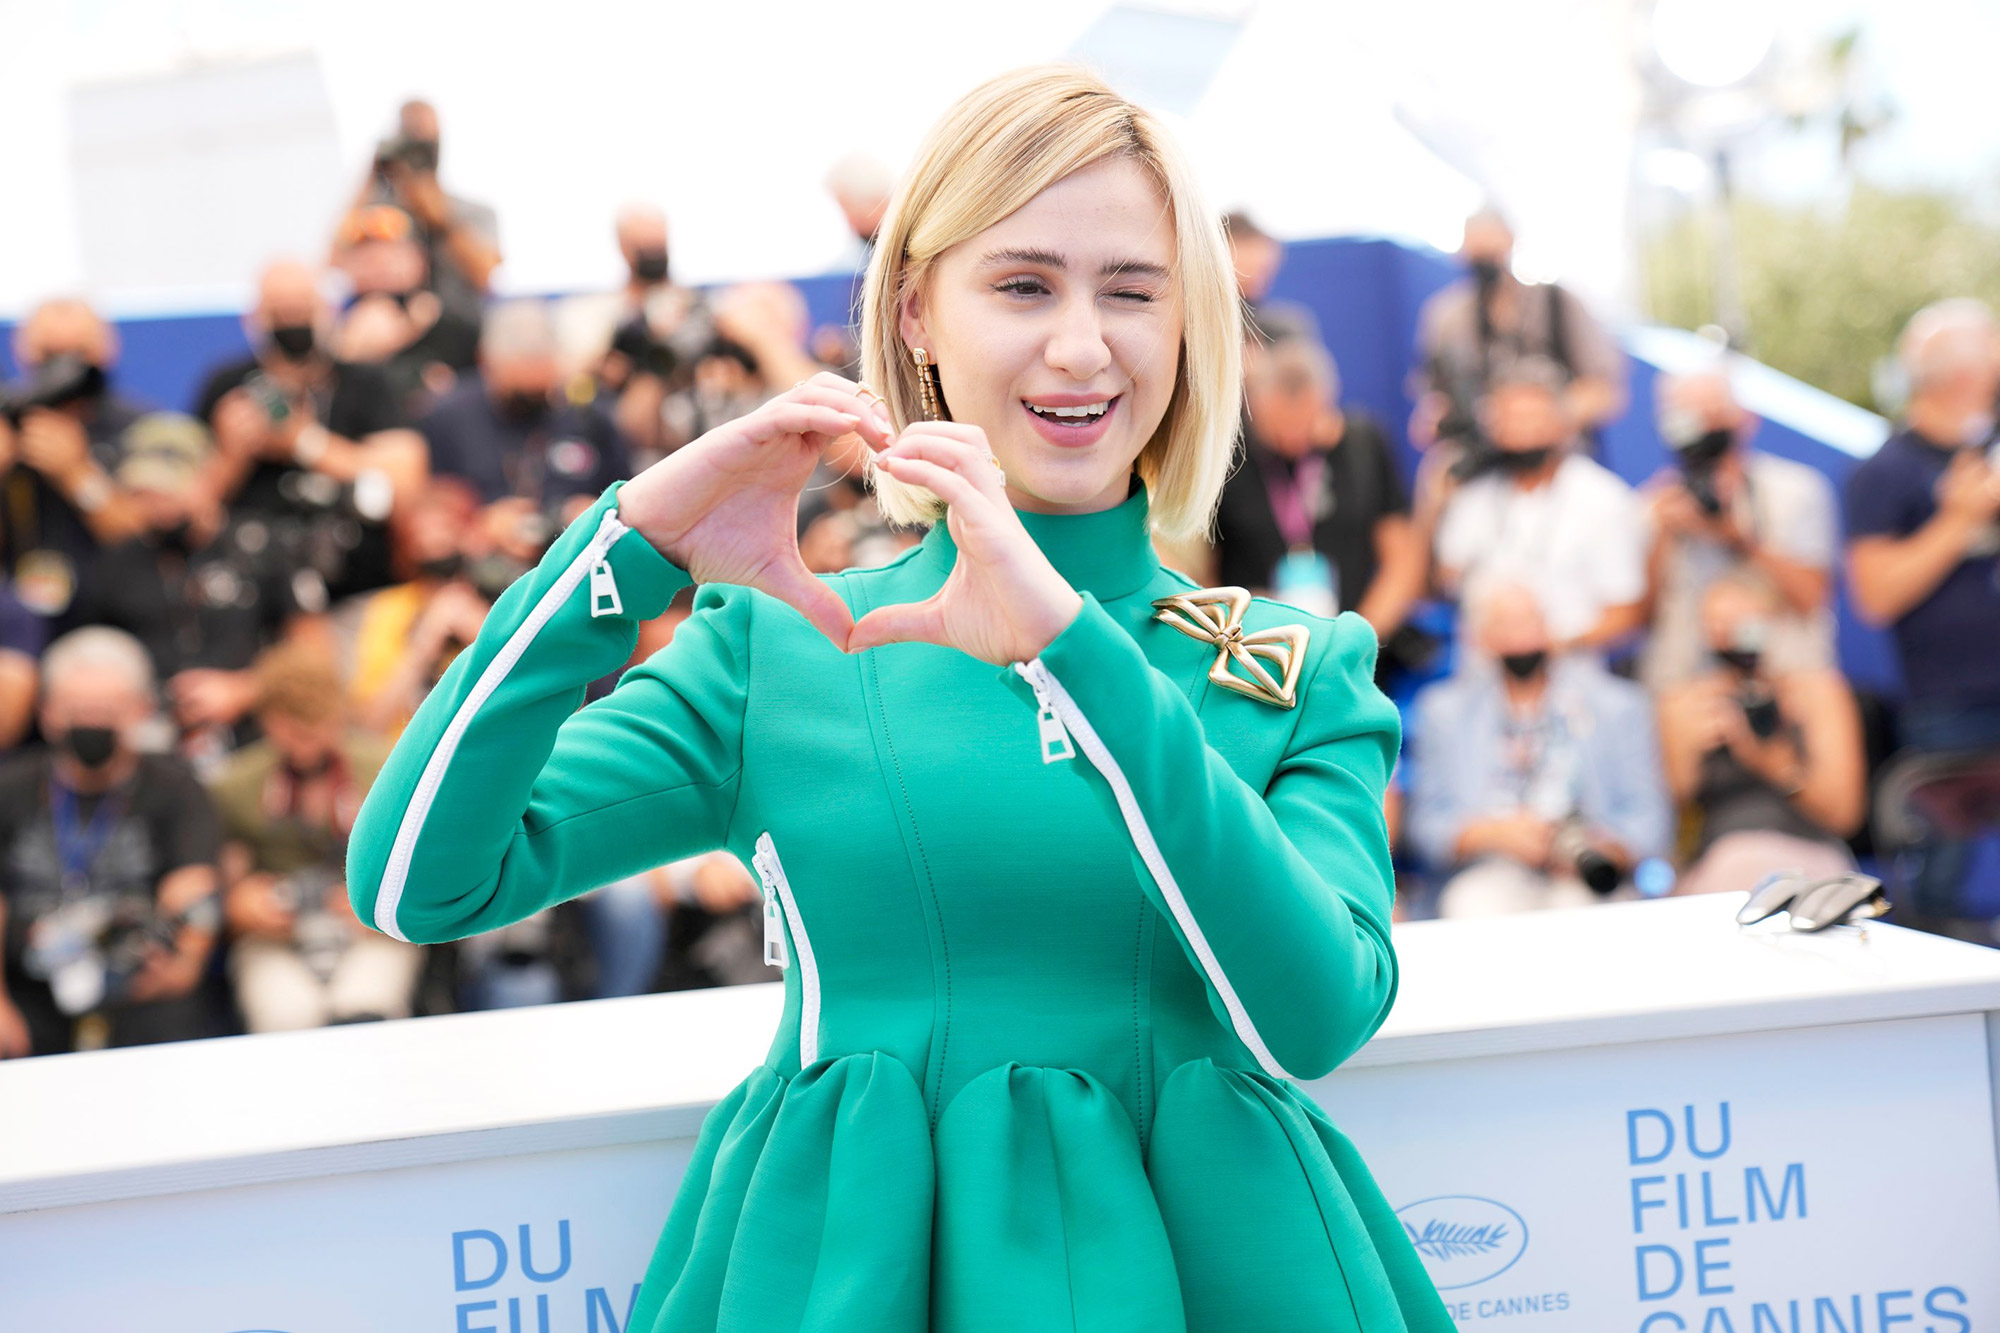 Maria Bakalova poses for photographers at the photo call for the film 'Women Do Cry' at the 74th international film festival, Cannes, southern France 2021 Women Do Cry Photo Call, Cannes, France - 14 Jul 2021